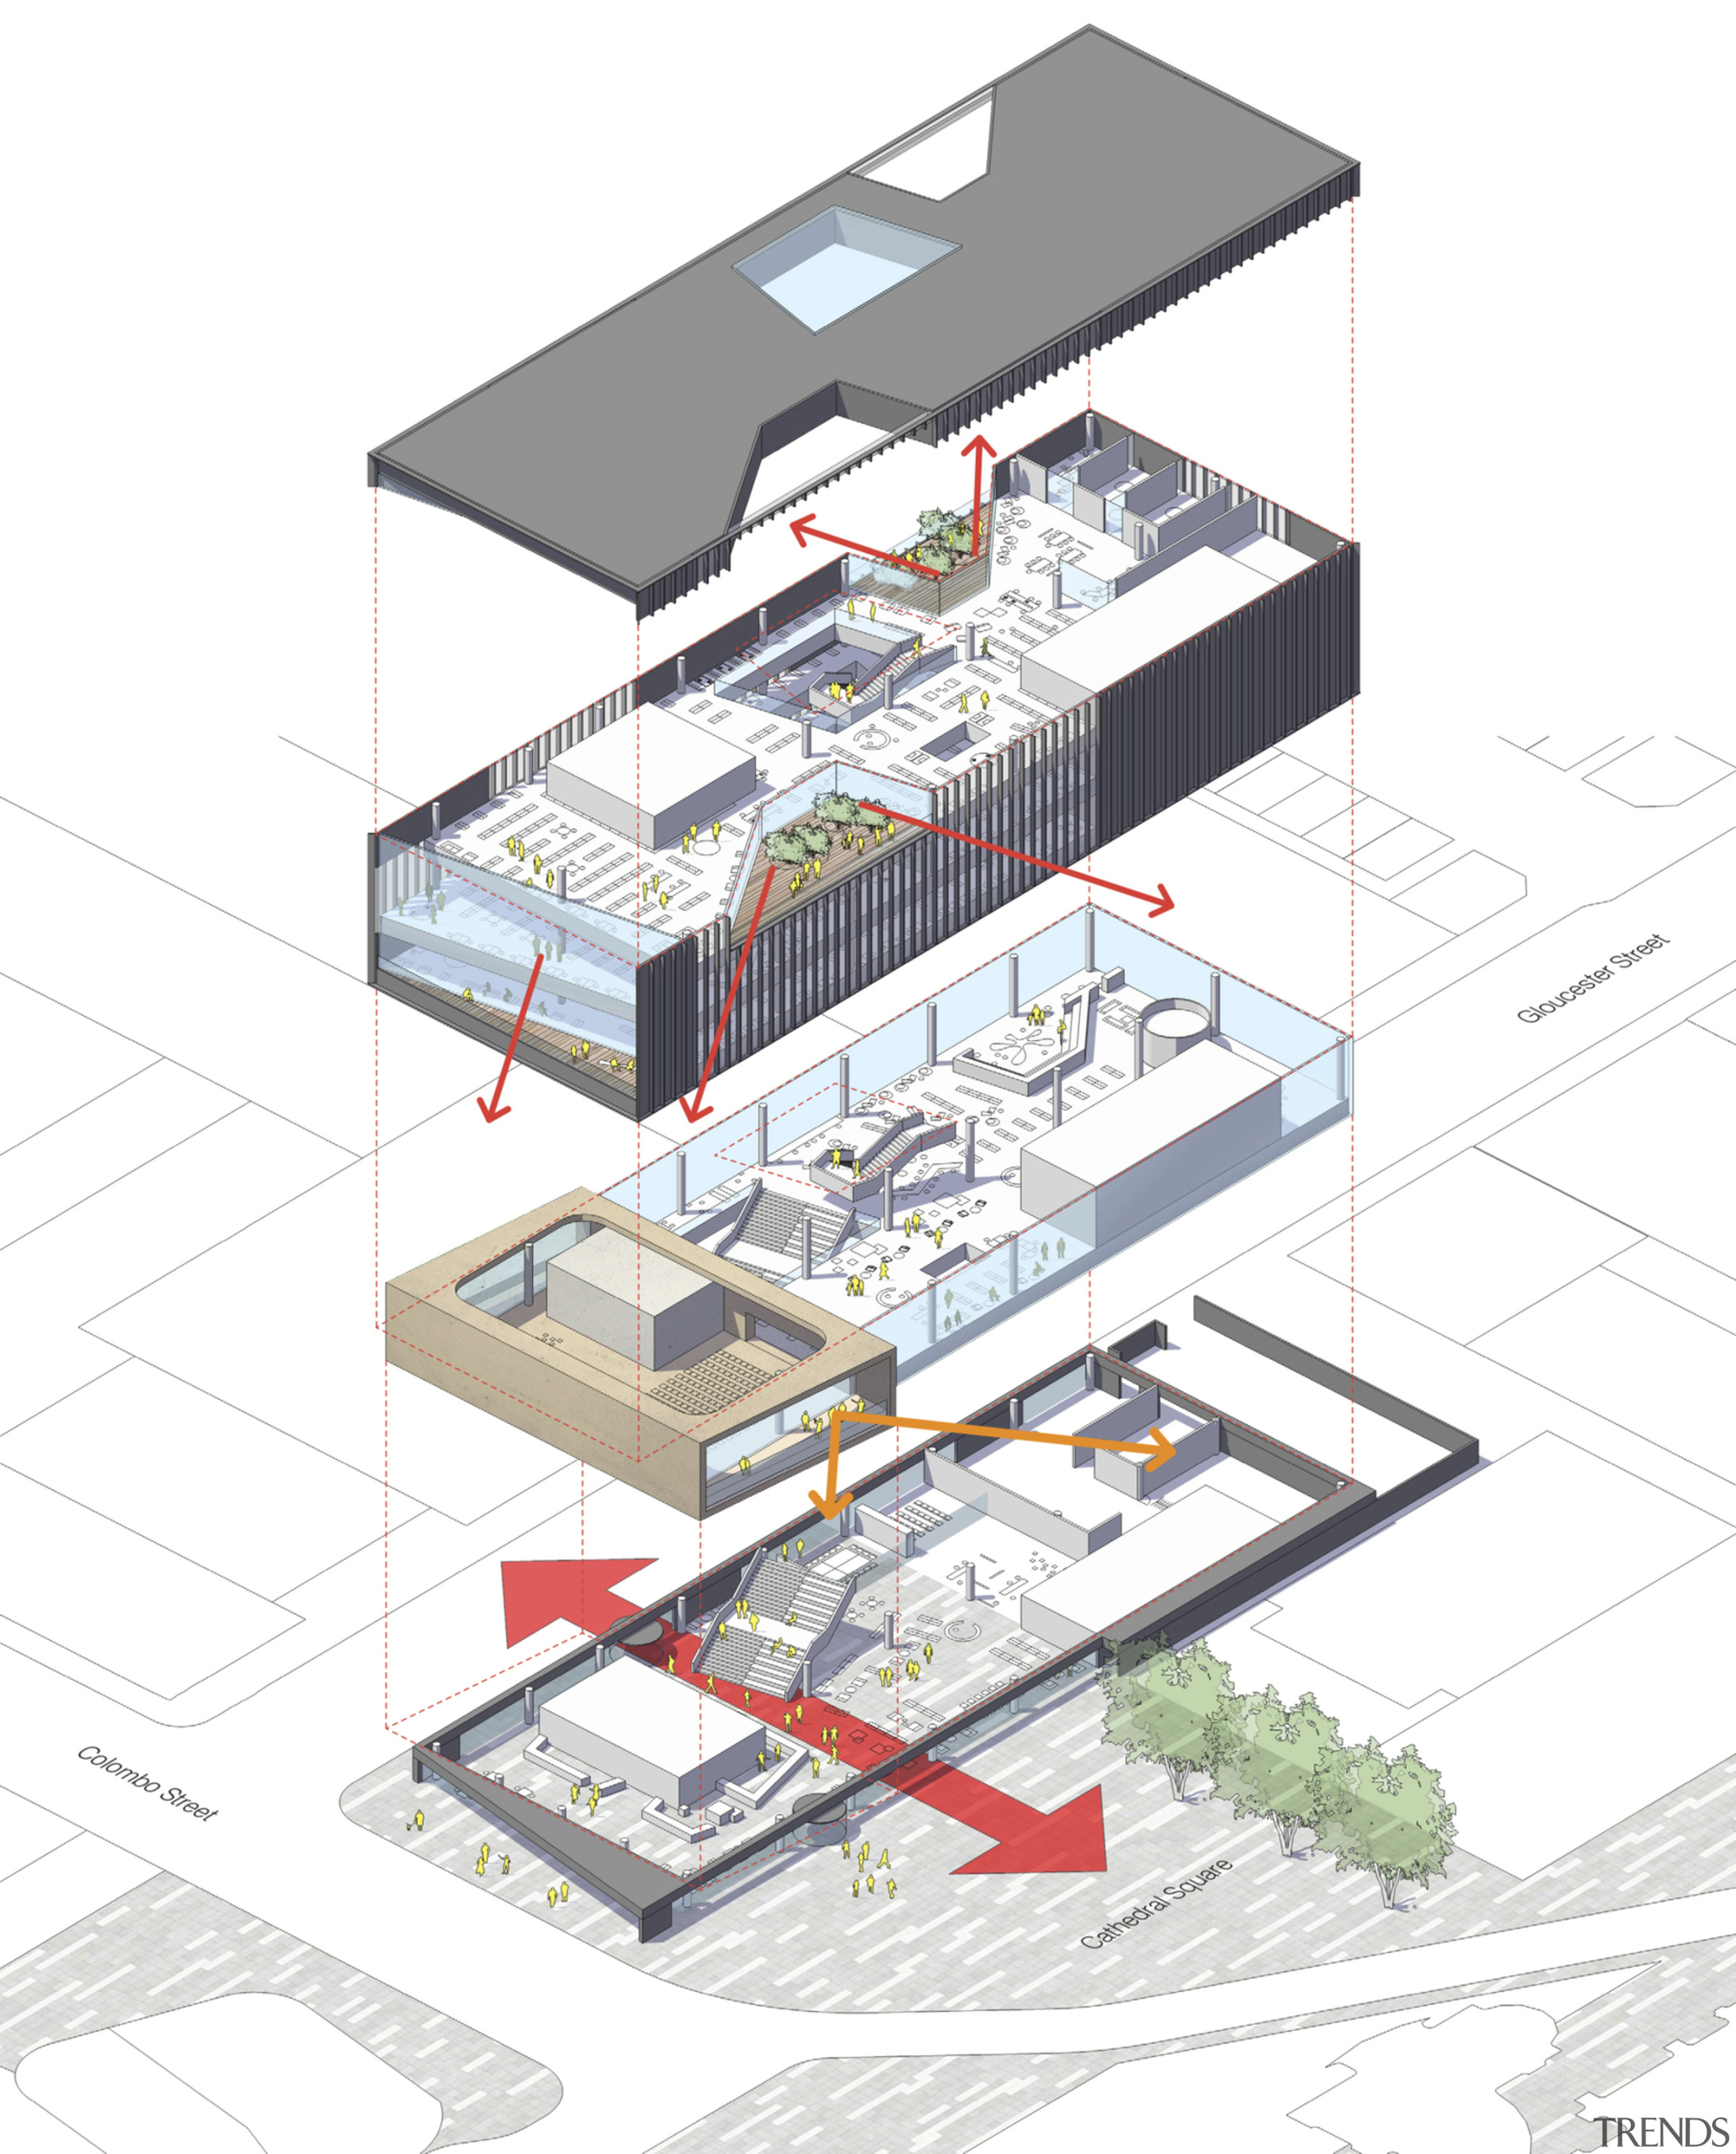 Christchurch Central Library – diagram  - Christchurch Central architecture, diagram, structure, urban design, white